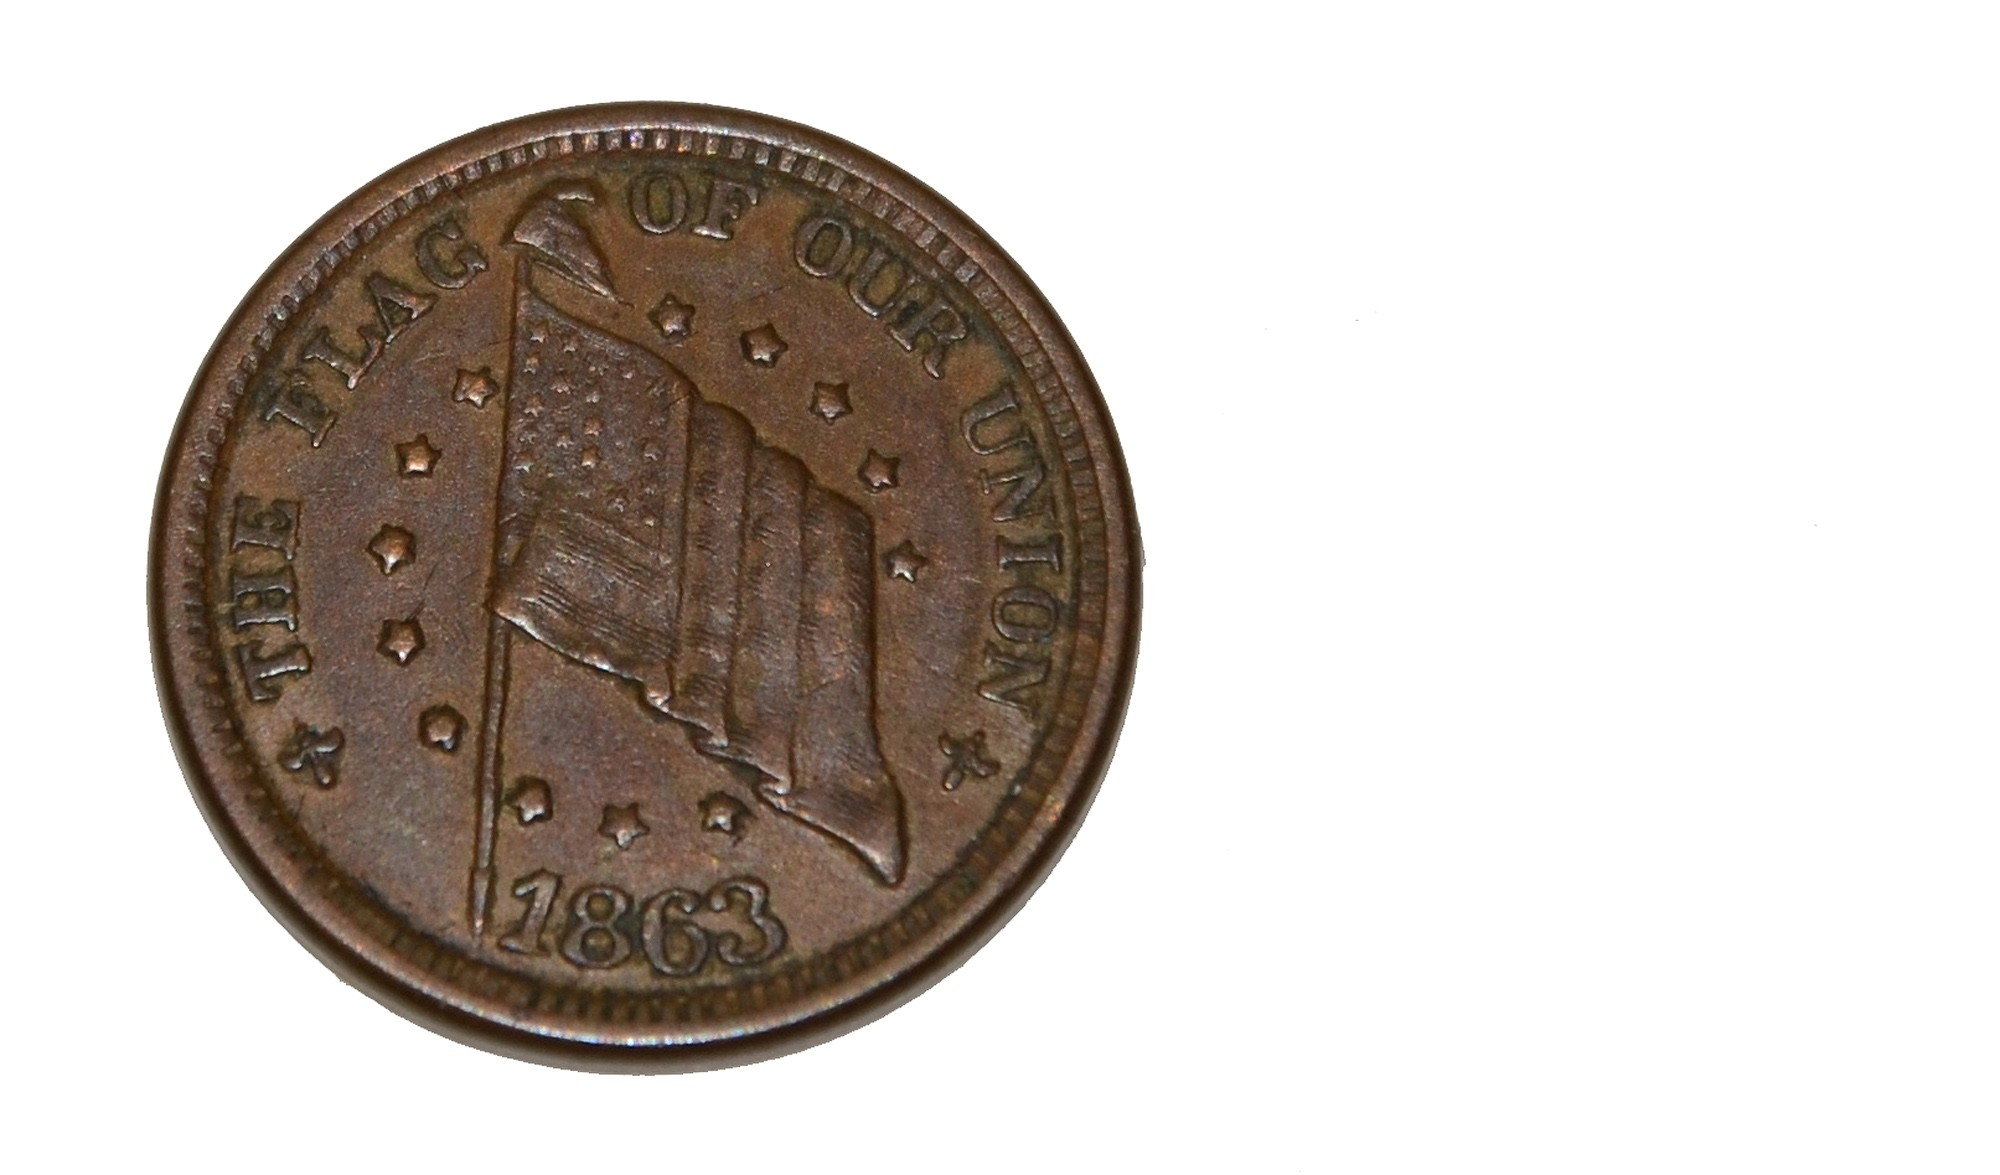 CIVIL WAR ERA BRASS TOKEN – BINGHAMTON, NY